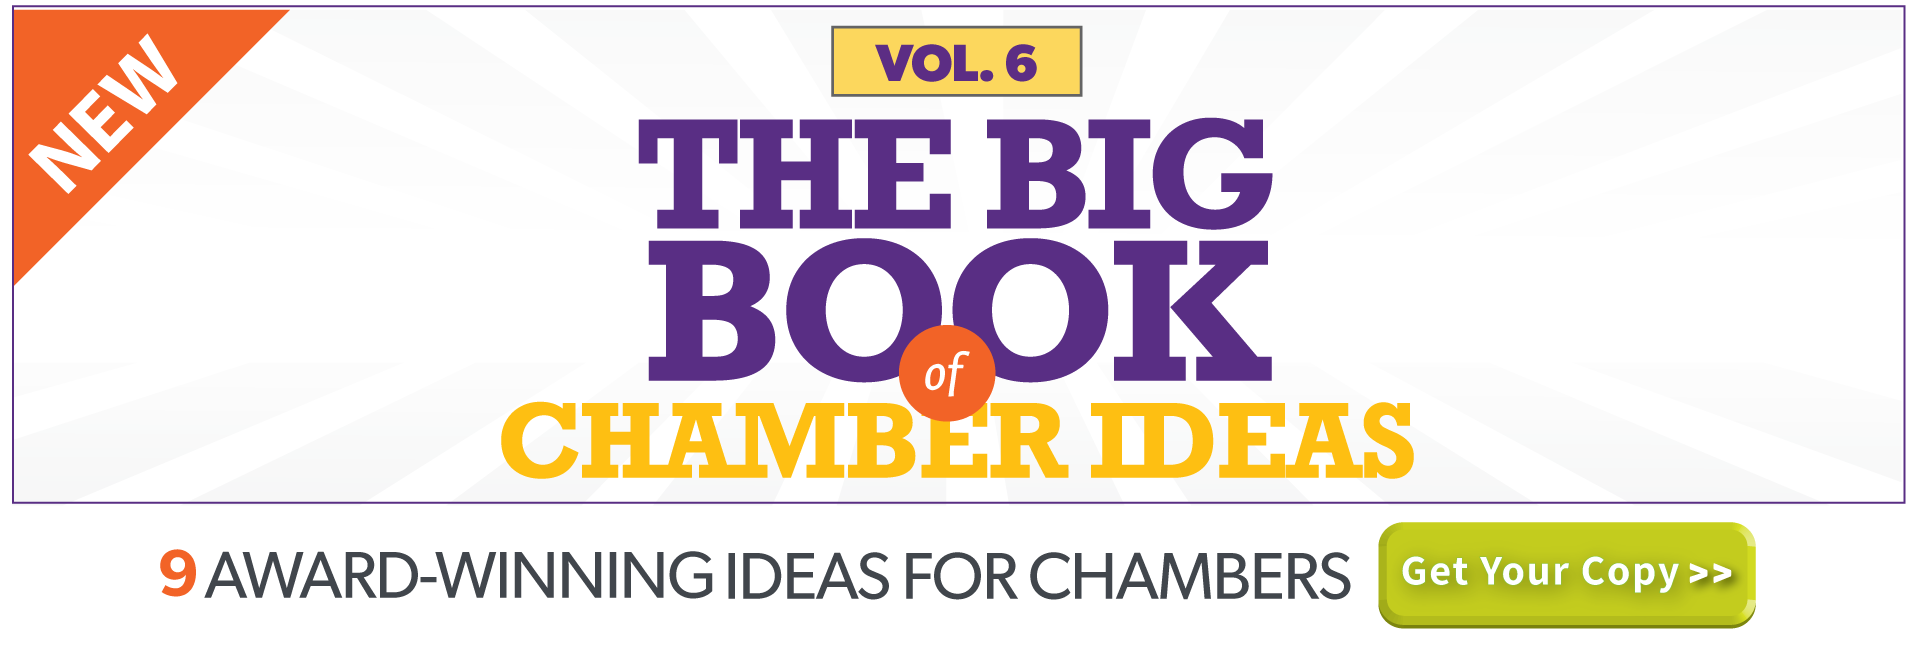 The Big Book of Chamber Ideas